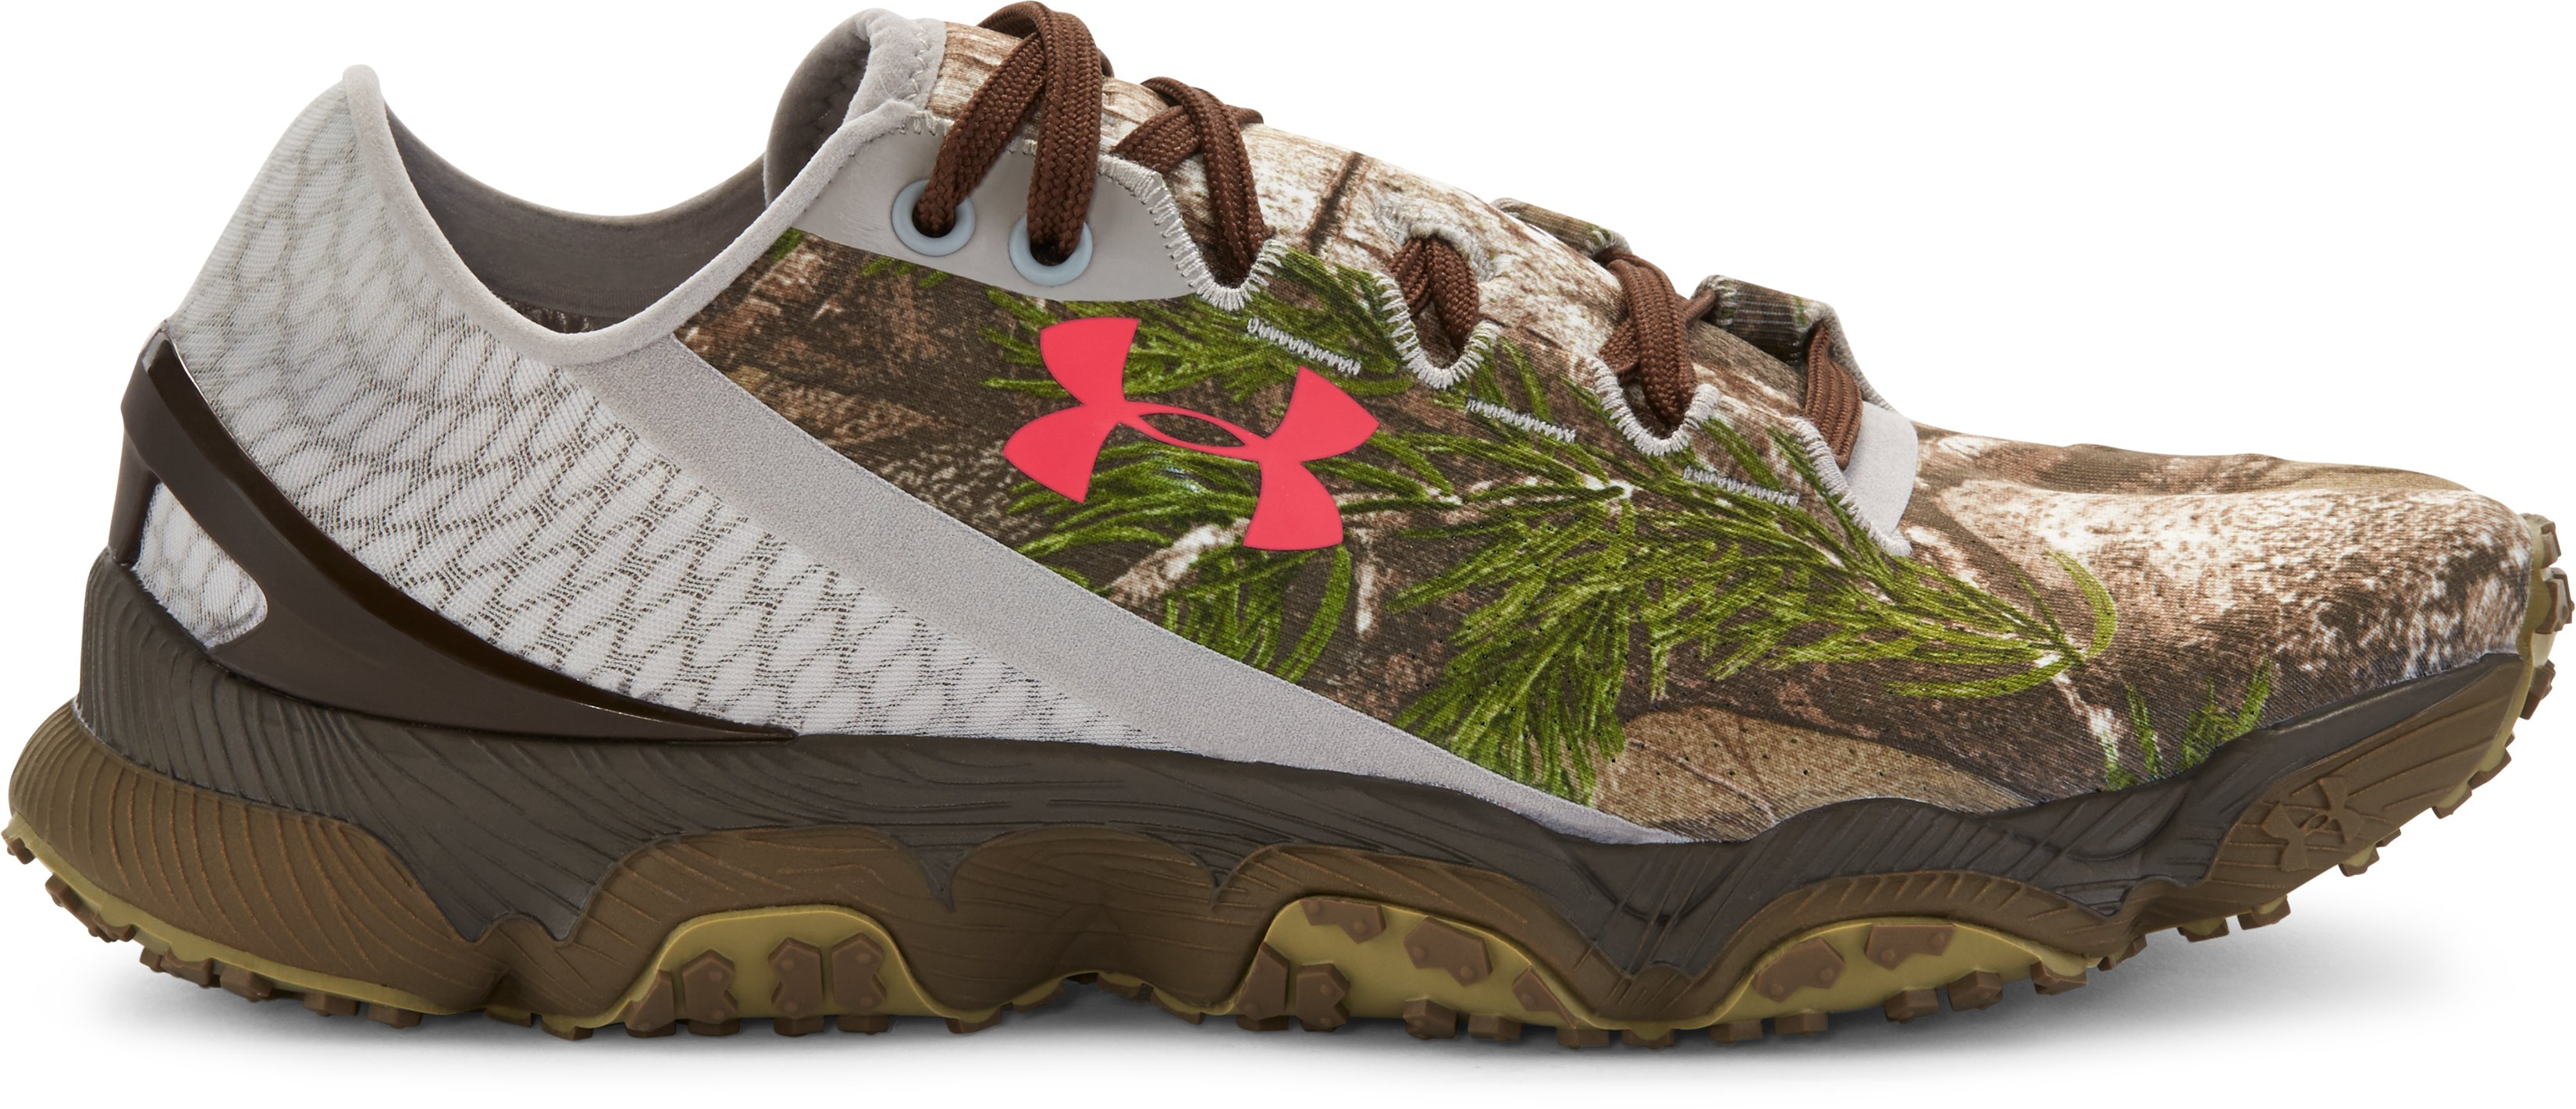 Women's UA SpeedForm® XC Camo Trail Running Shoes, REALTREE AP-XTRA